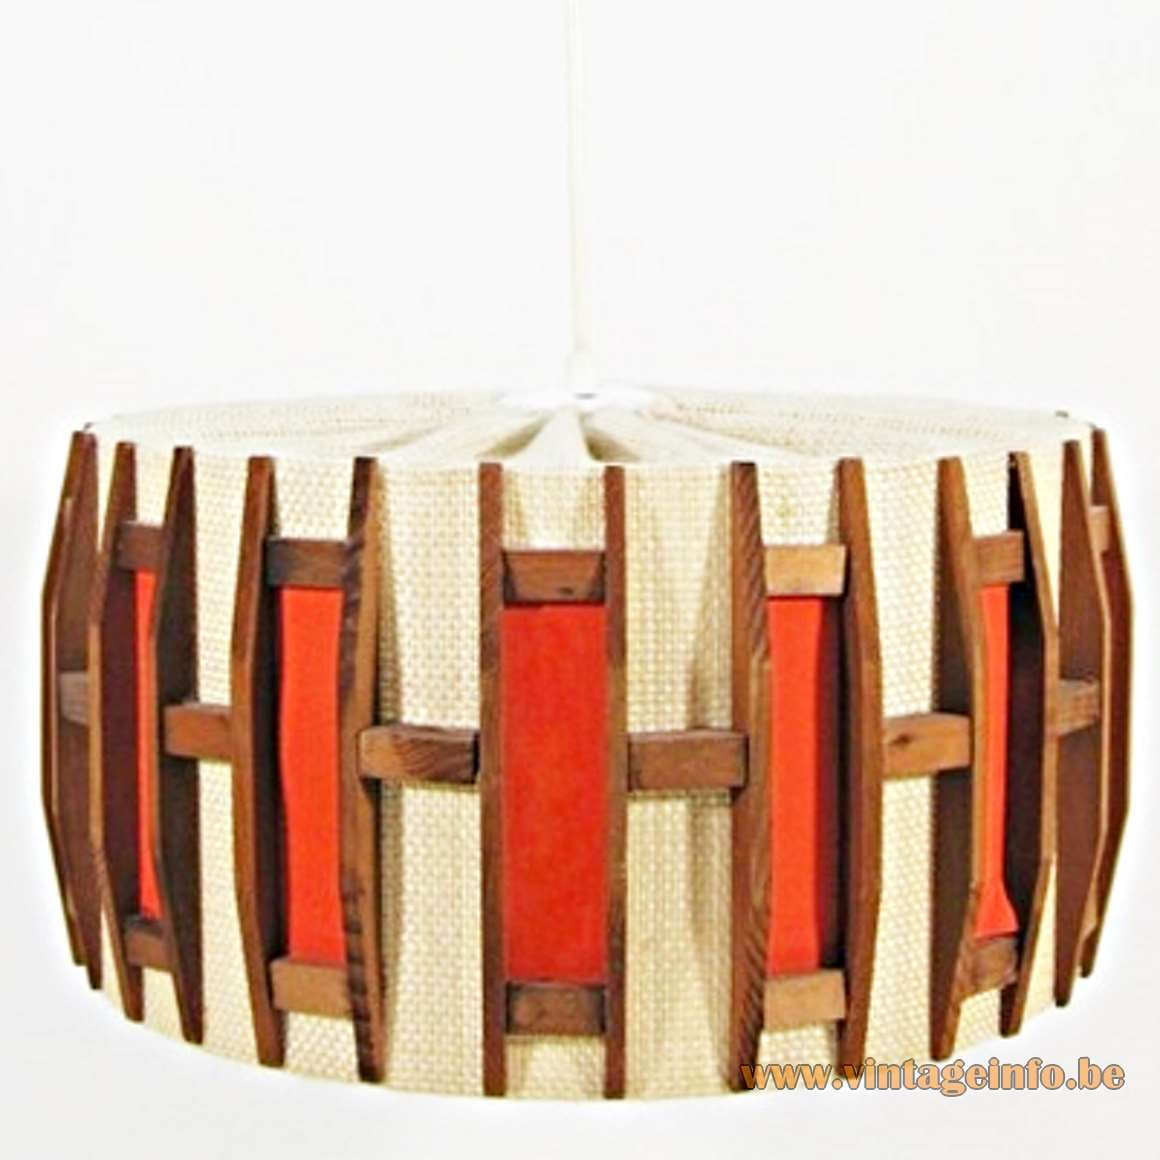 Jute and Teak Pendant Lamp round lampshade orange wood windows 1960s Massive Belgium MCM